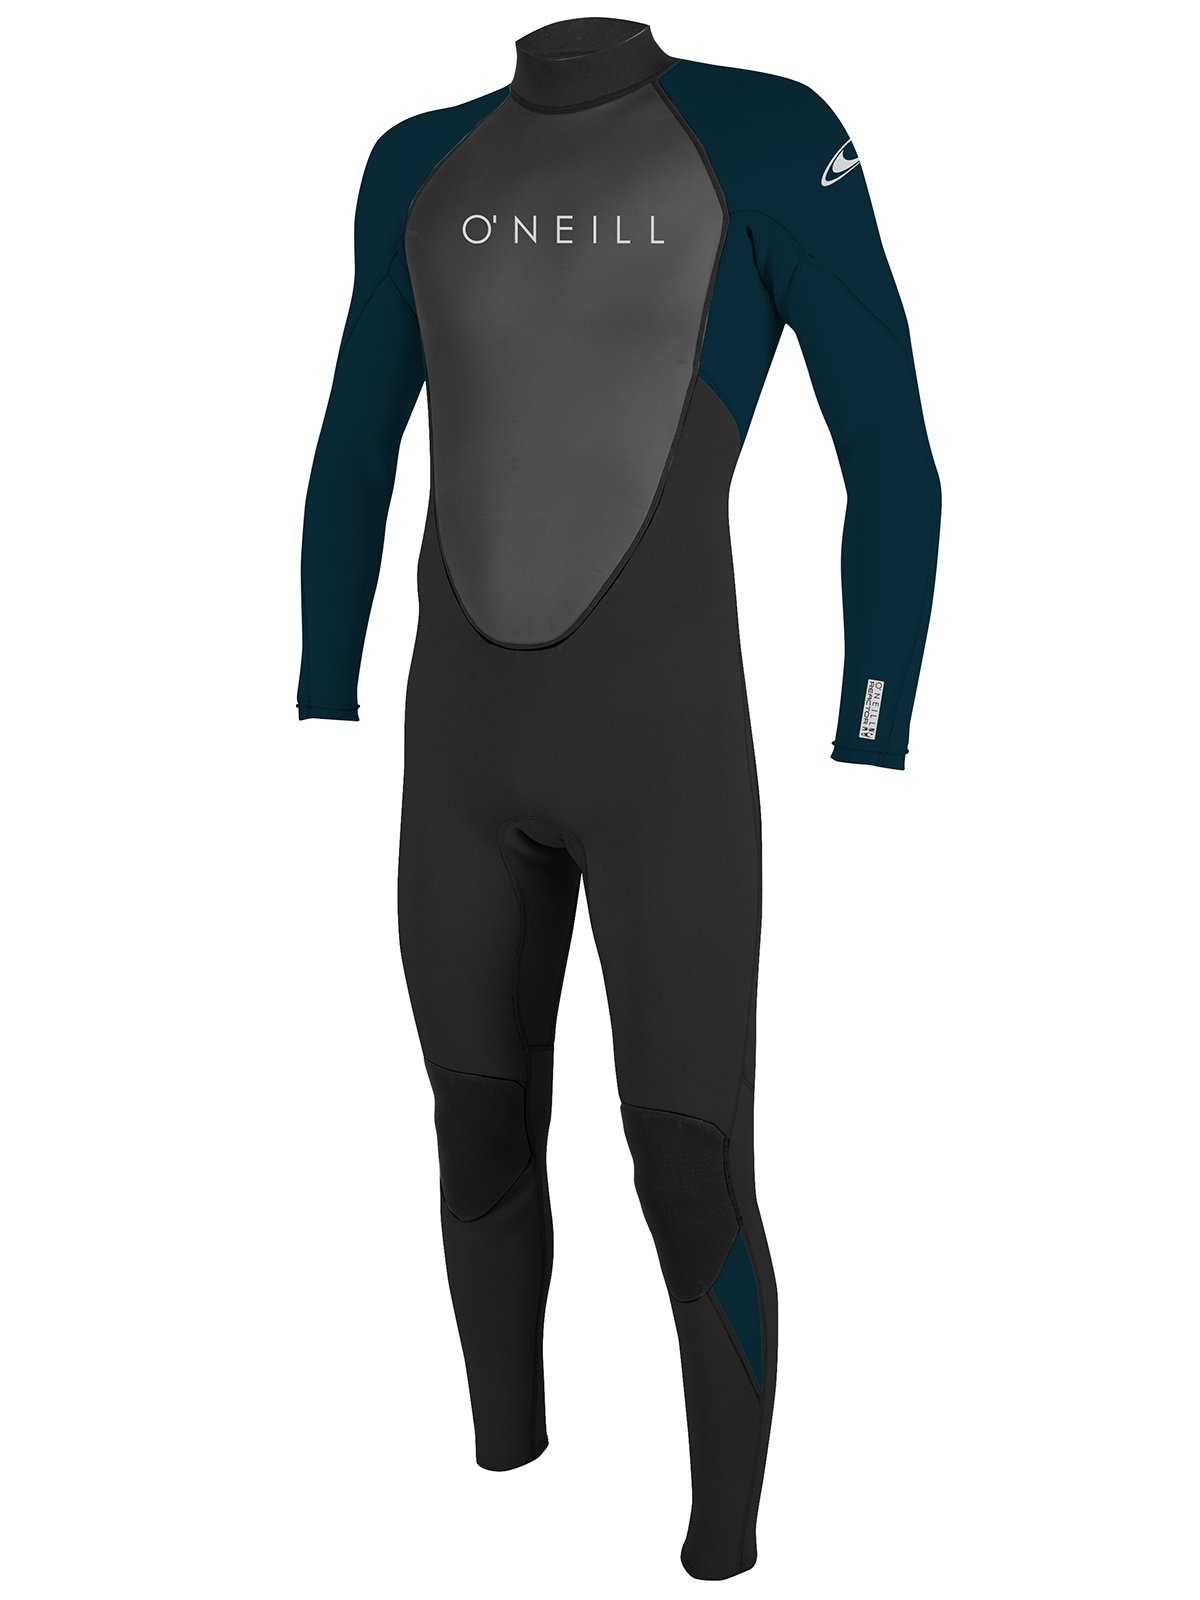 O'Neill Reactor 2 Men's 3/2mm Full Wetsuit 4XL-Tall Black/slate (5283IS) by O'Neill Wetsuits (Image #1)